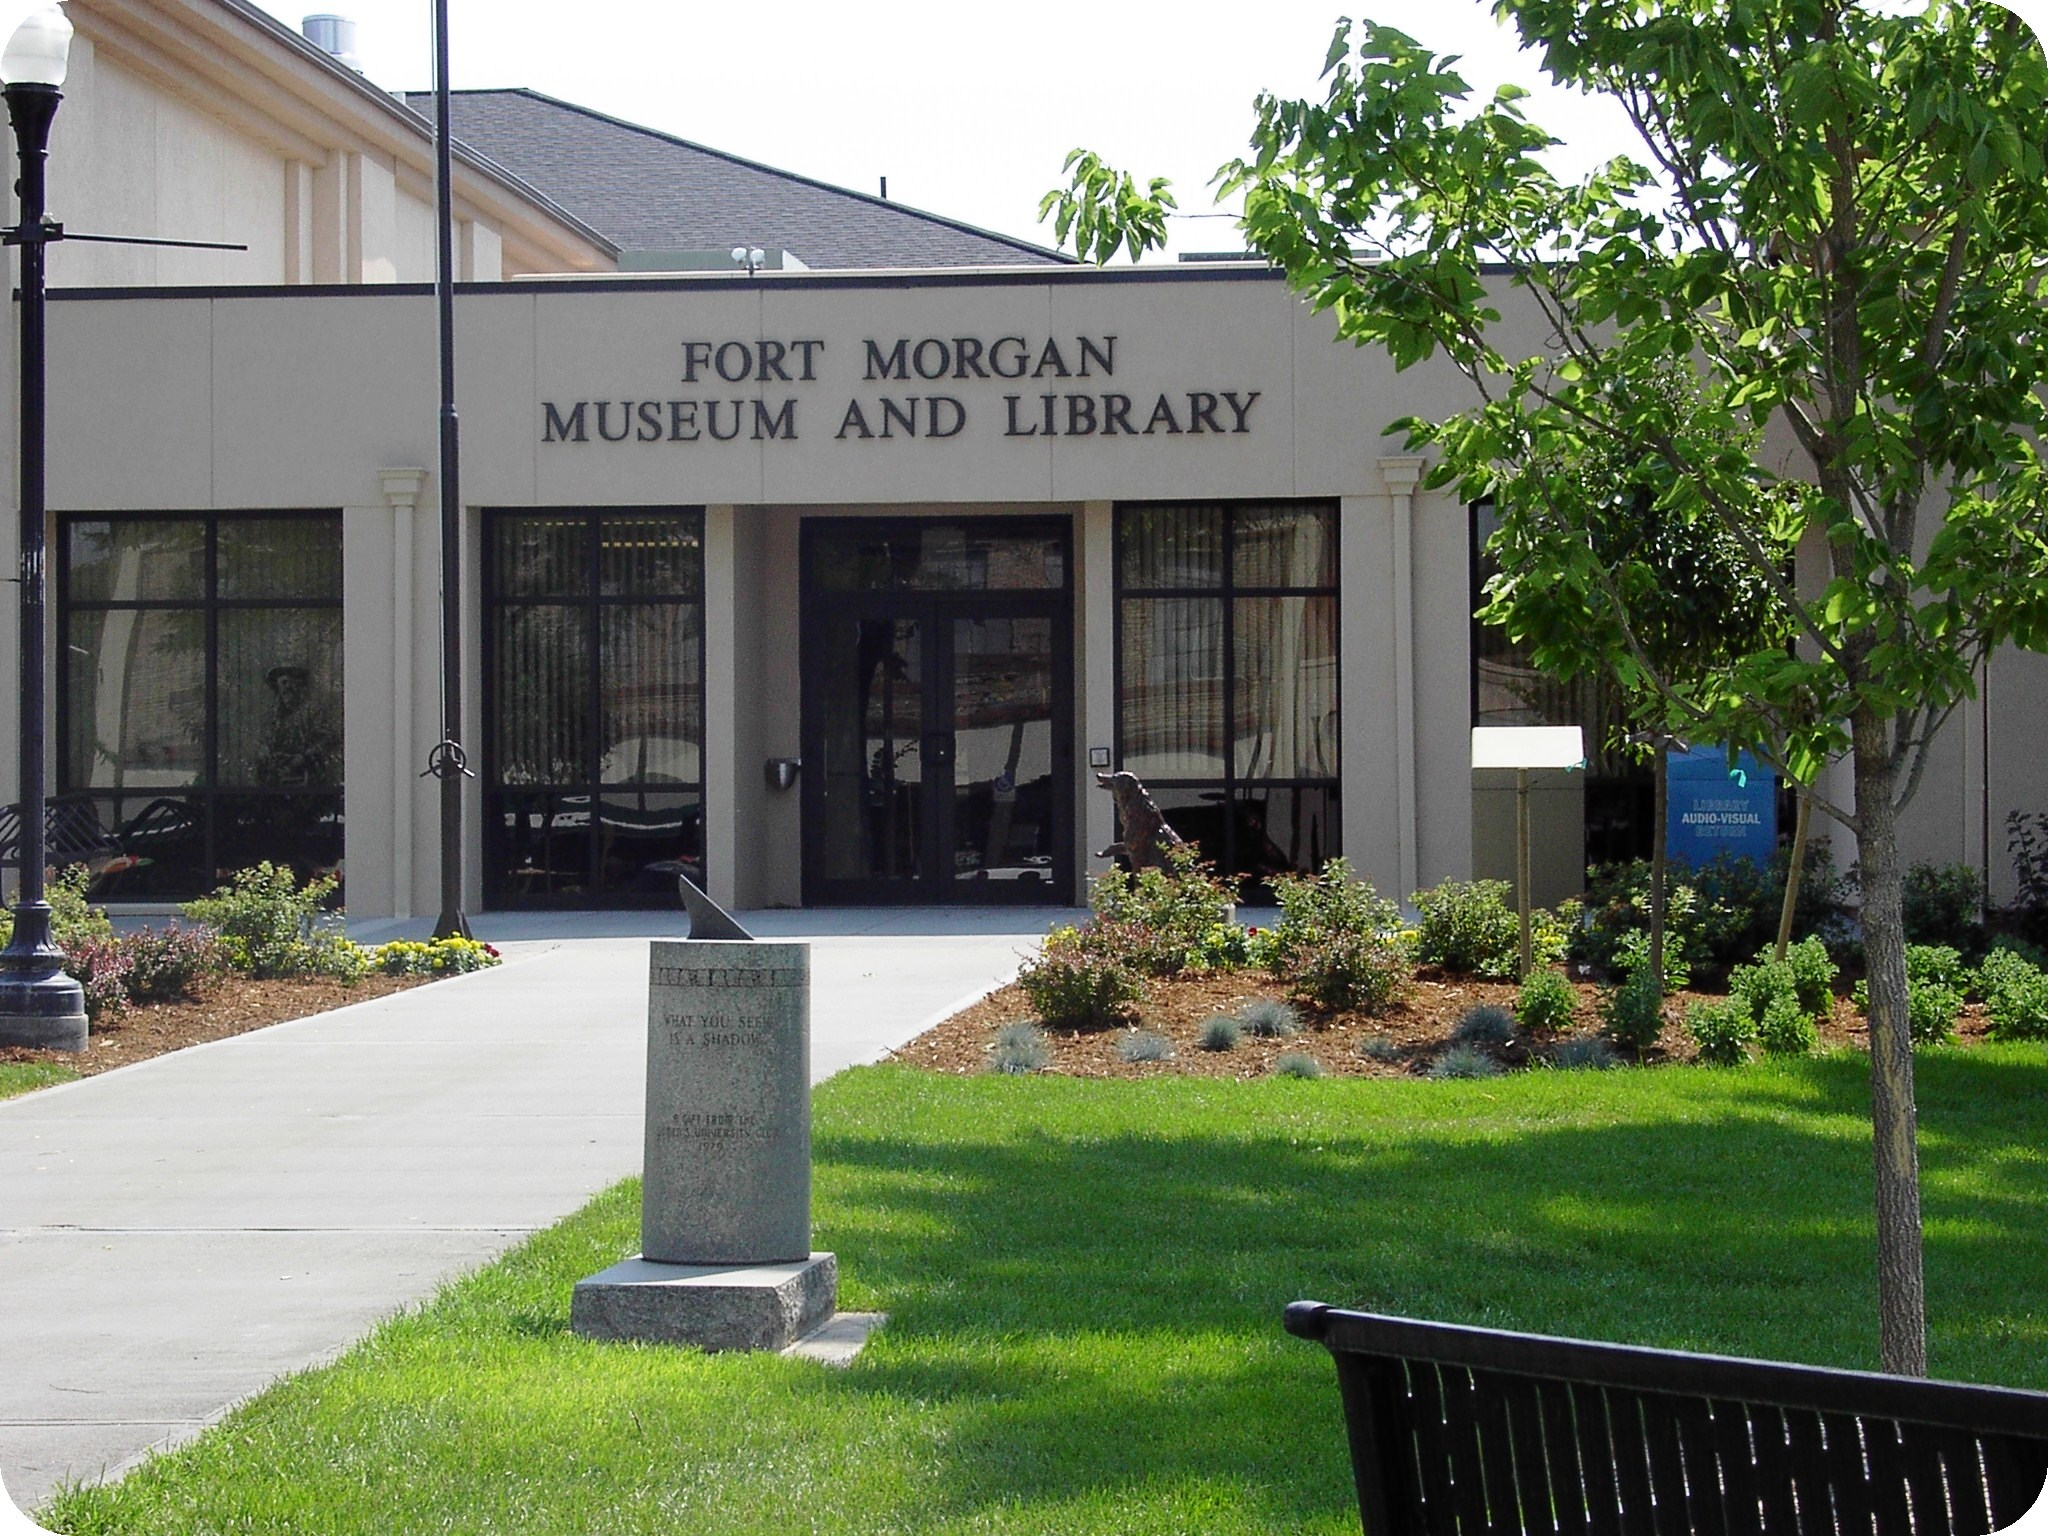 Fort Morgan Museum